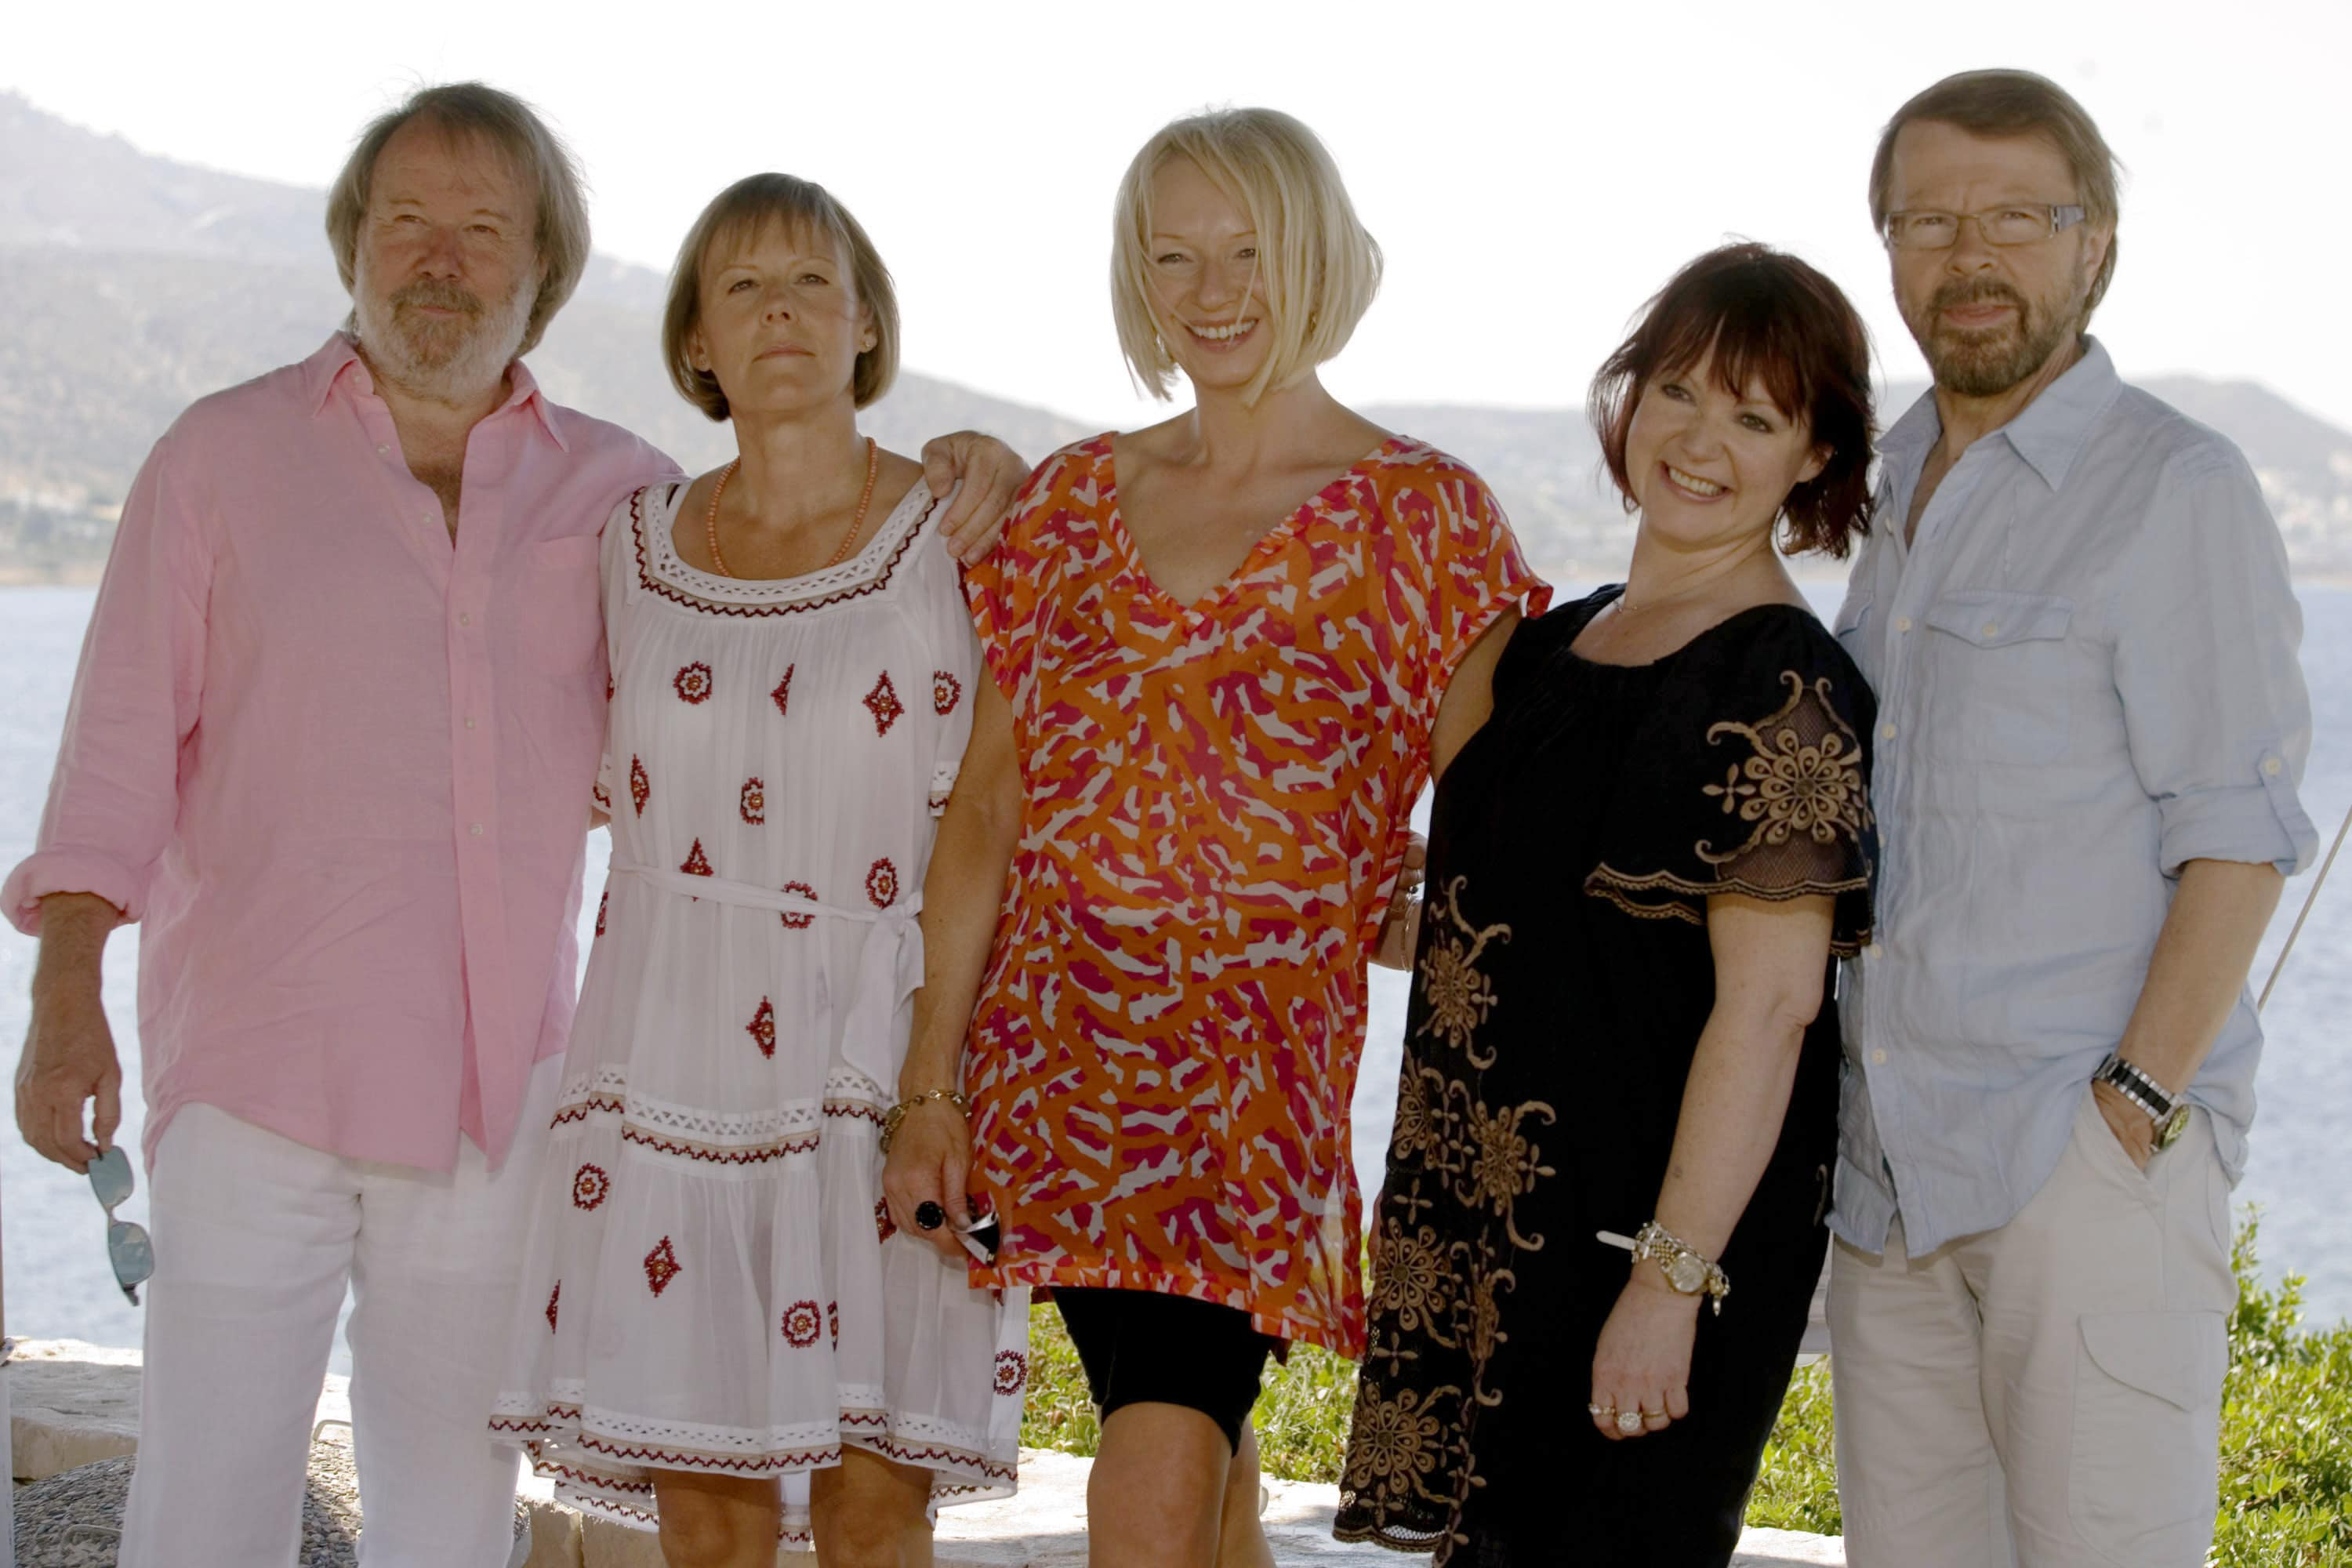 Benny Andersson, an unidentified woman, Judy Cramer, Mona Norkilt and Bjorn Ulvaeus of the Swedish music band Abba pose during a photocall for the movie 'Mamma Mia!' at the Lagonissi Grand Resort, on June 28, 2008 in Athens , Greece.(Photo by Milos Bicanski Getty Images)Caption